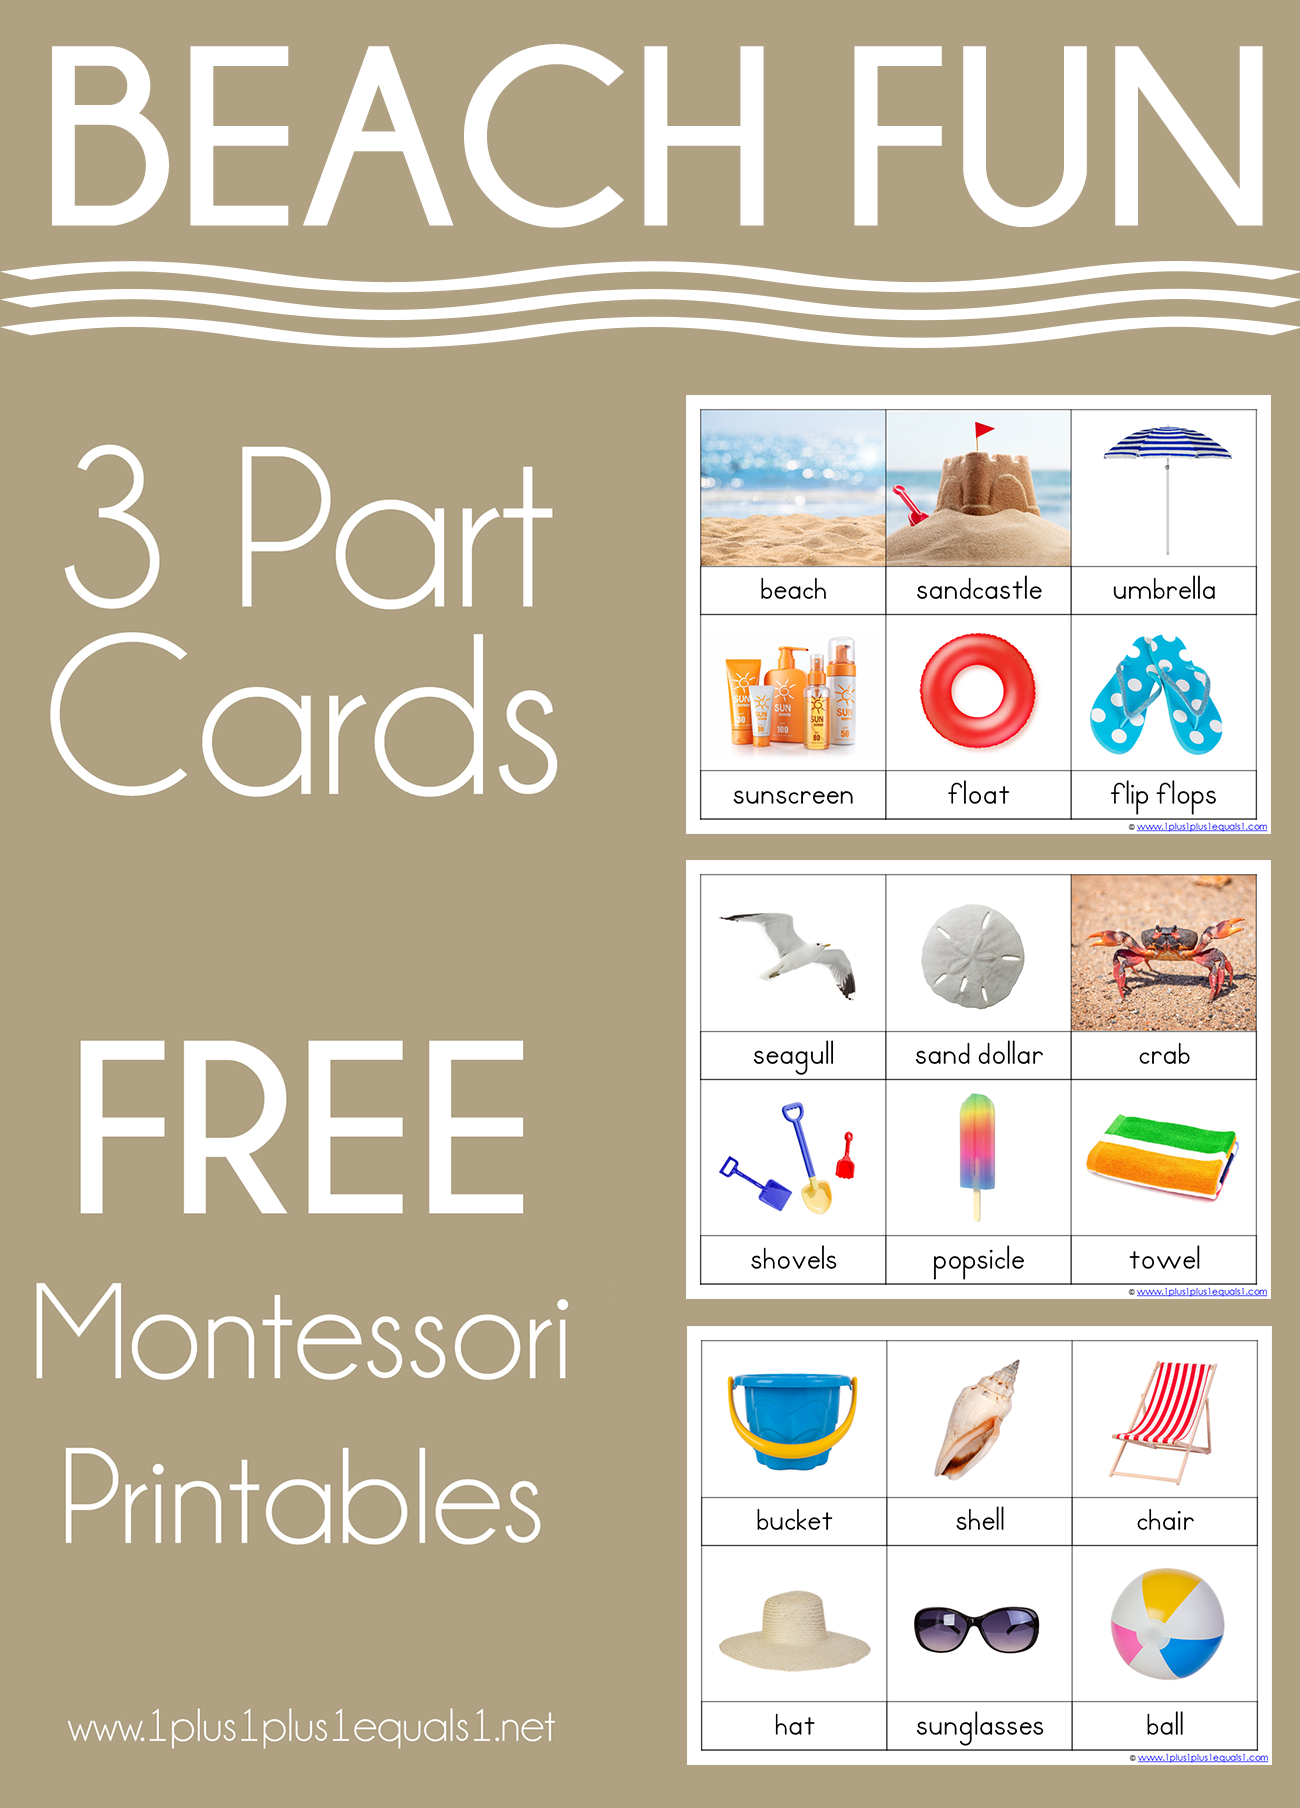 Beach Montessori Printables - FREE 3 Part Cards - 1+1+1=1